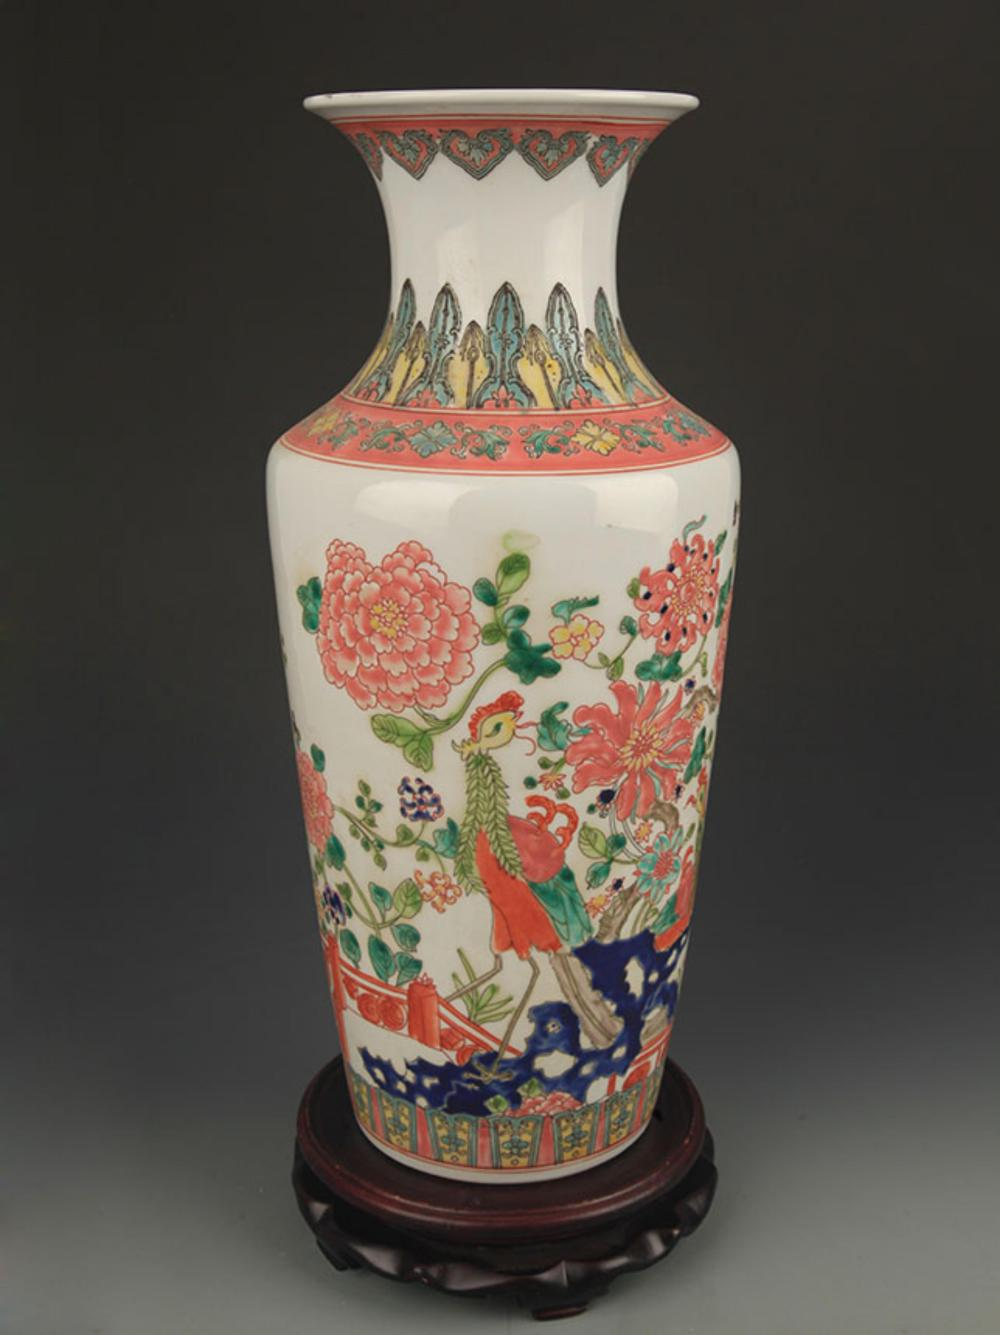 FAMILLE ROSE CHICKEN PATTERN DECORATIVE BOTTLE